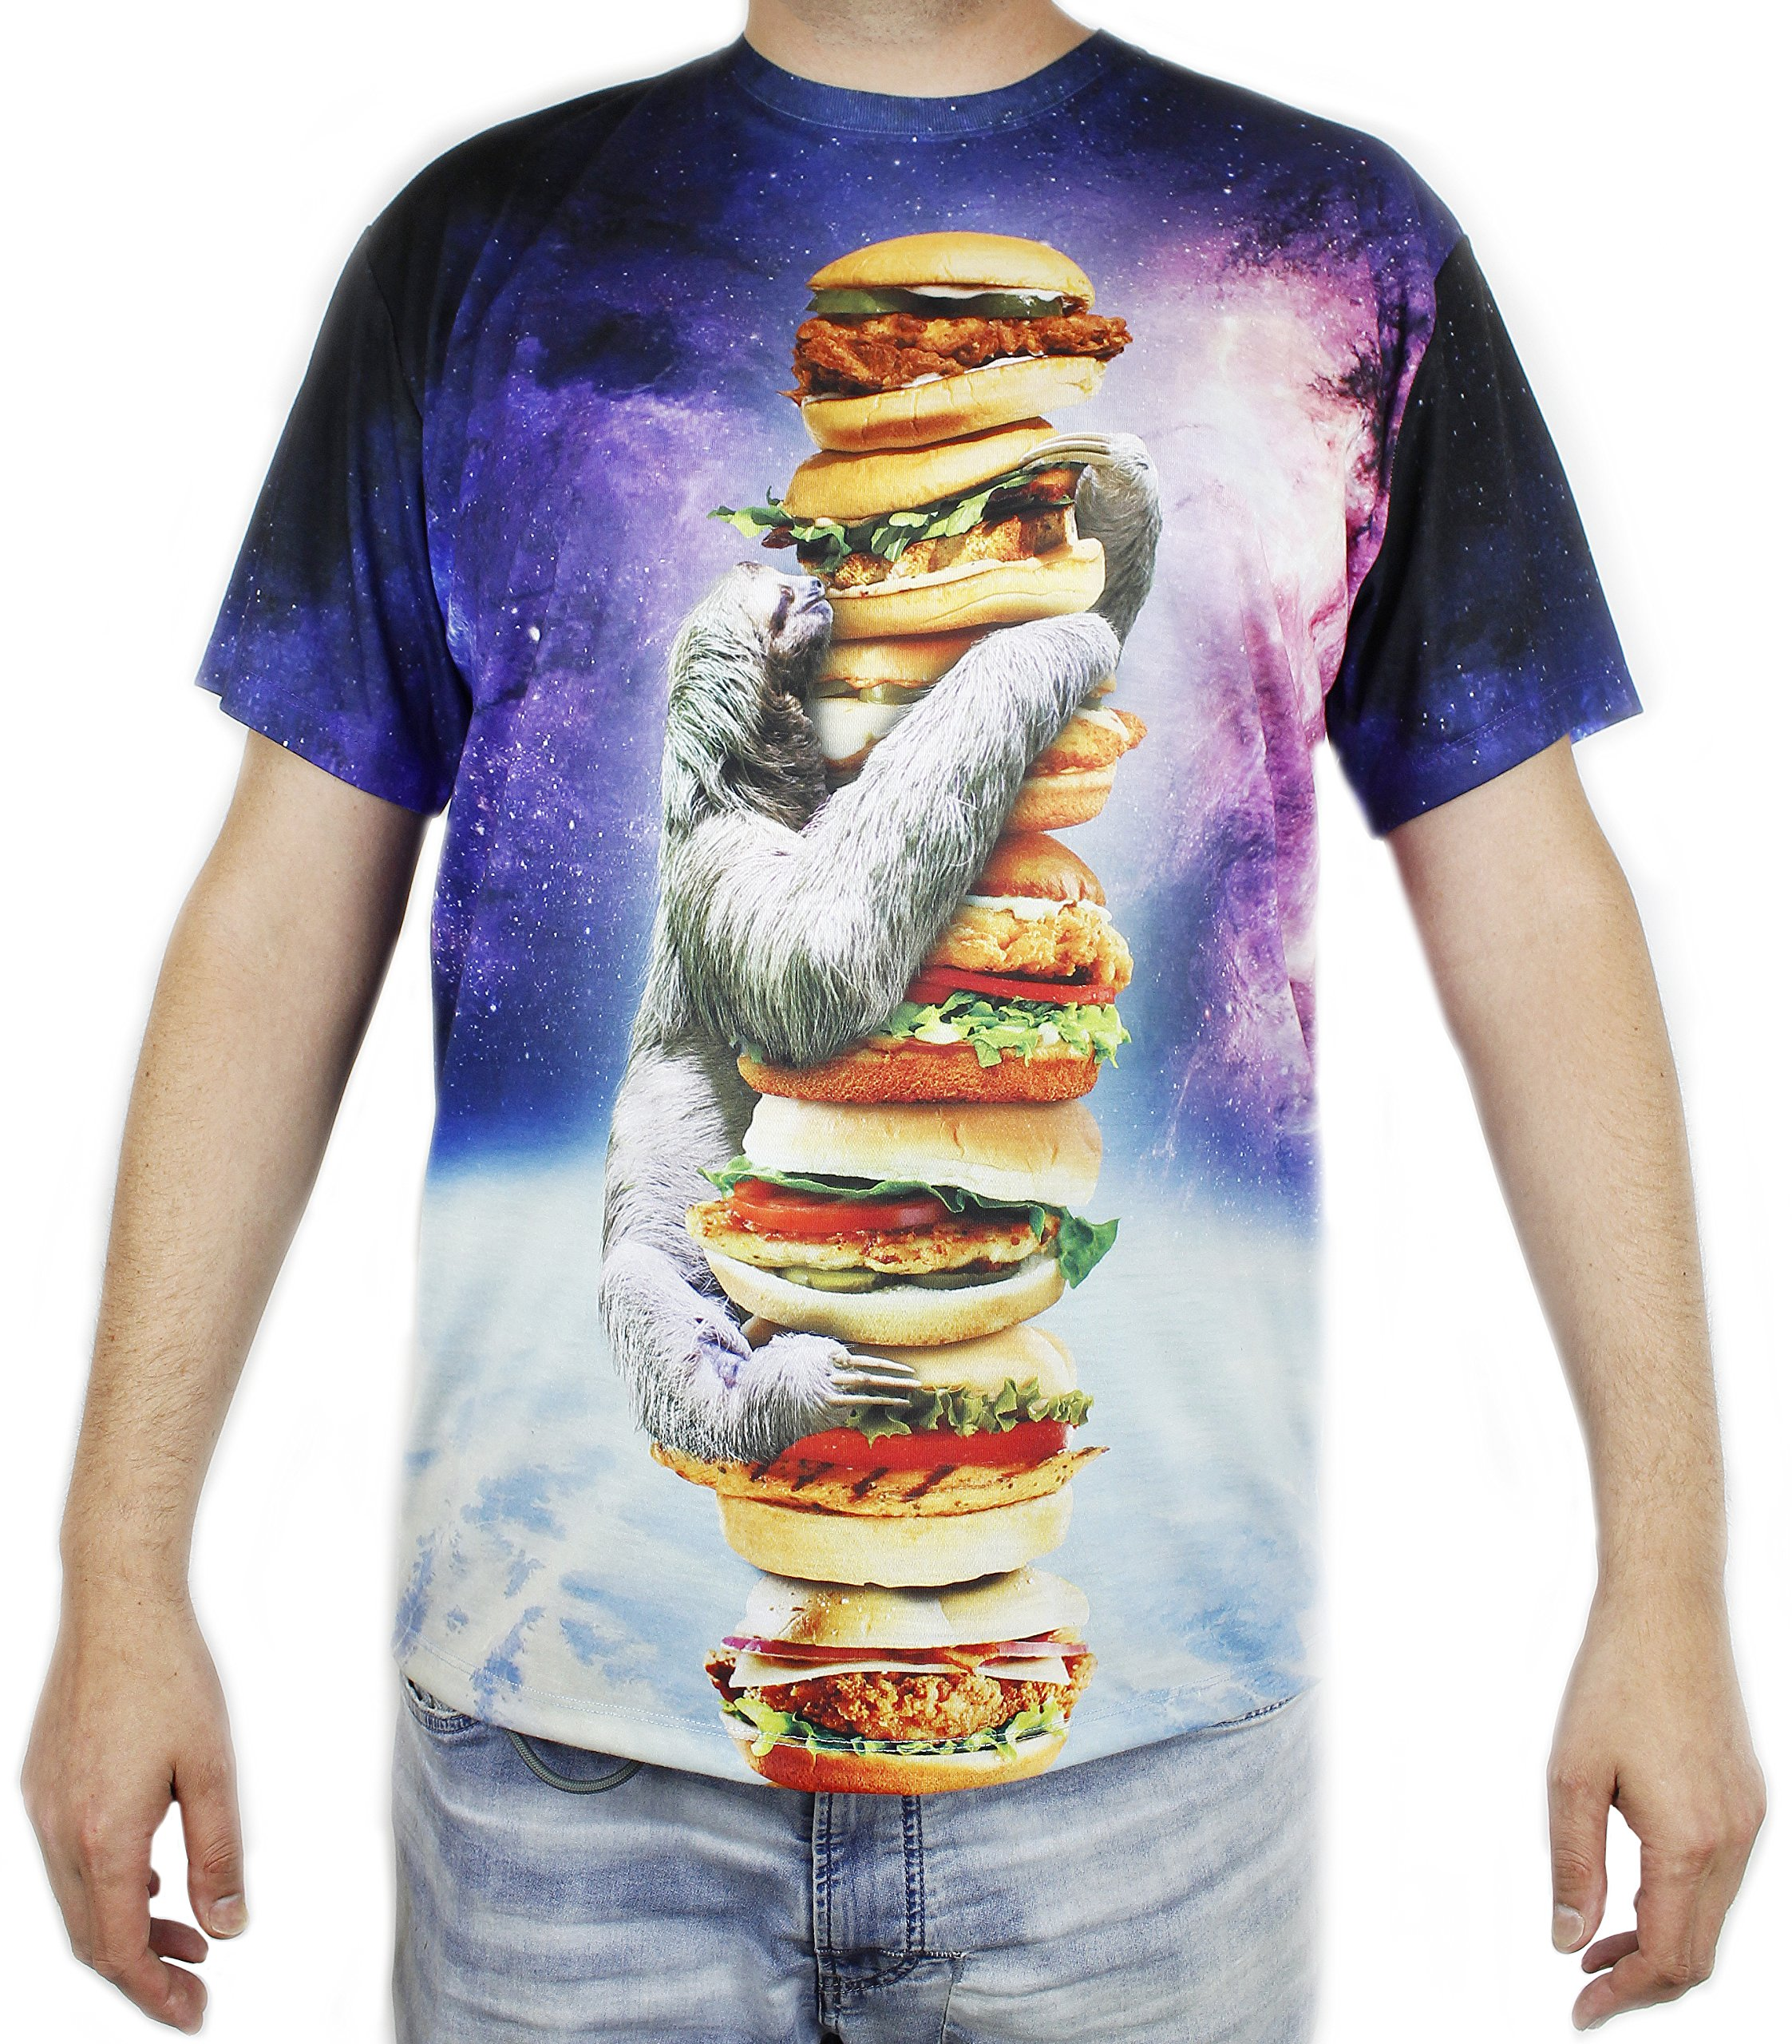 Sloth Galaxy Chicken Sandwich Tower T-Shirt - Adult Size Small